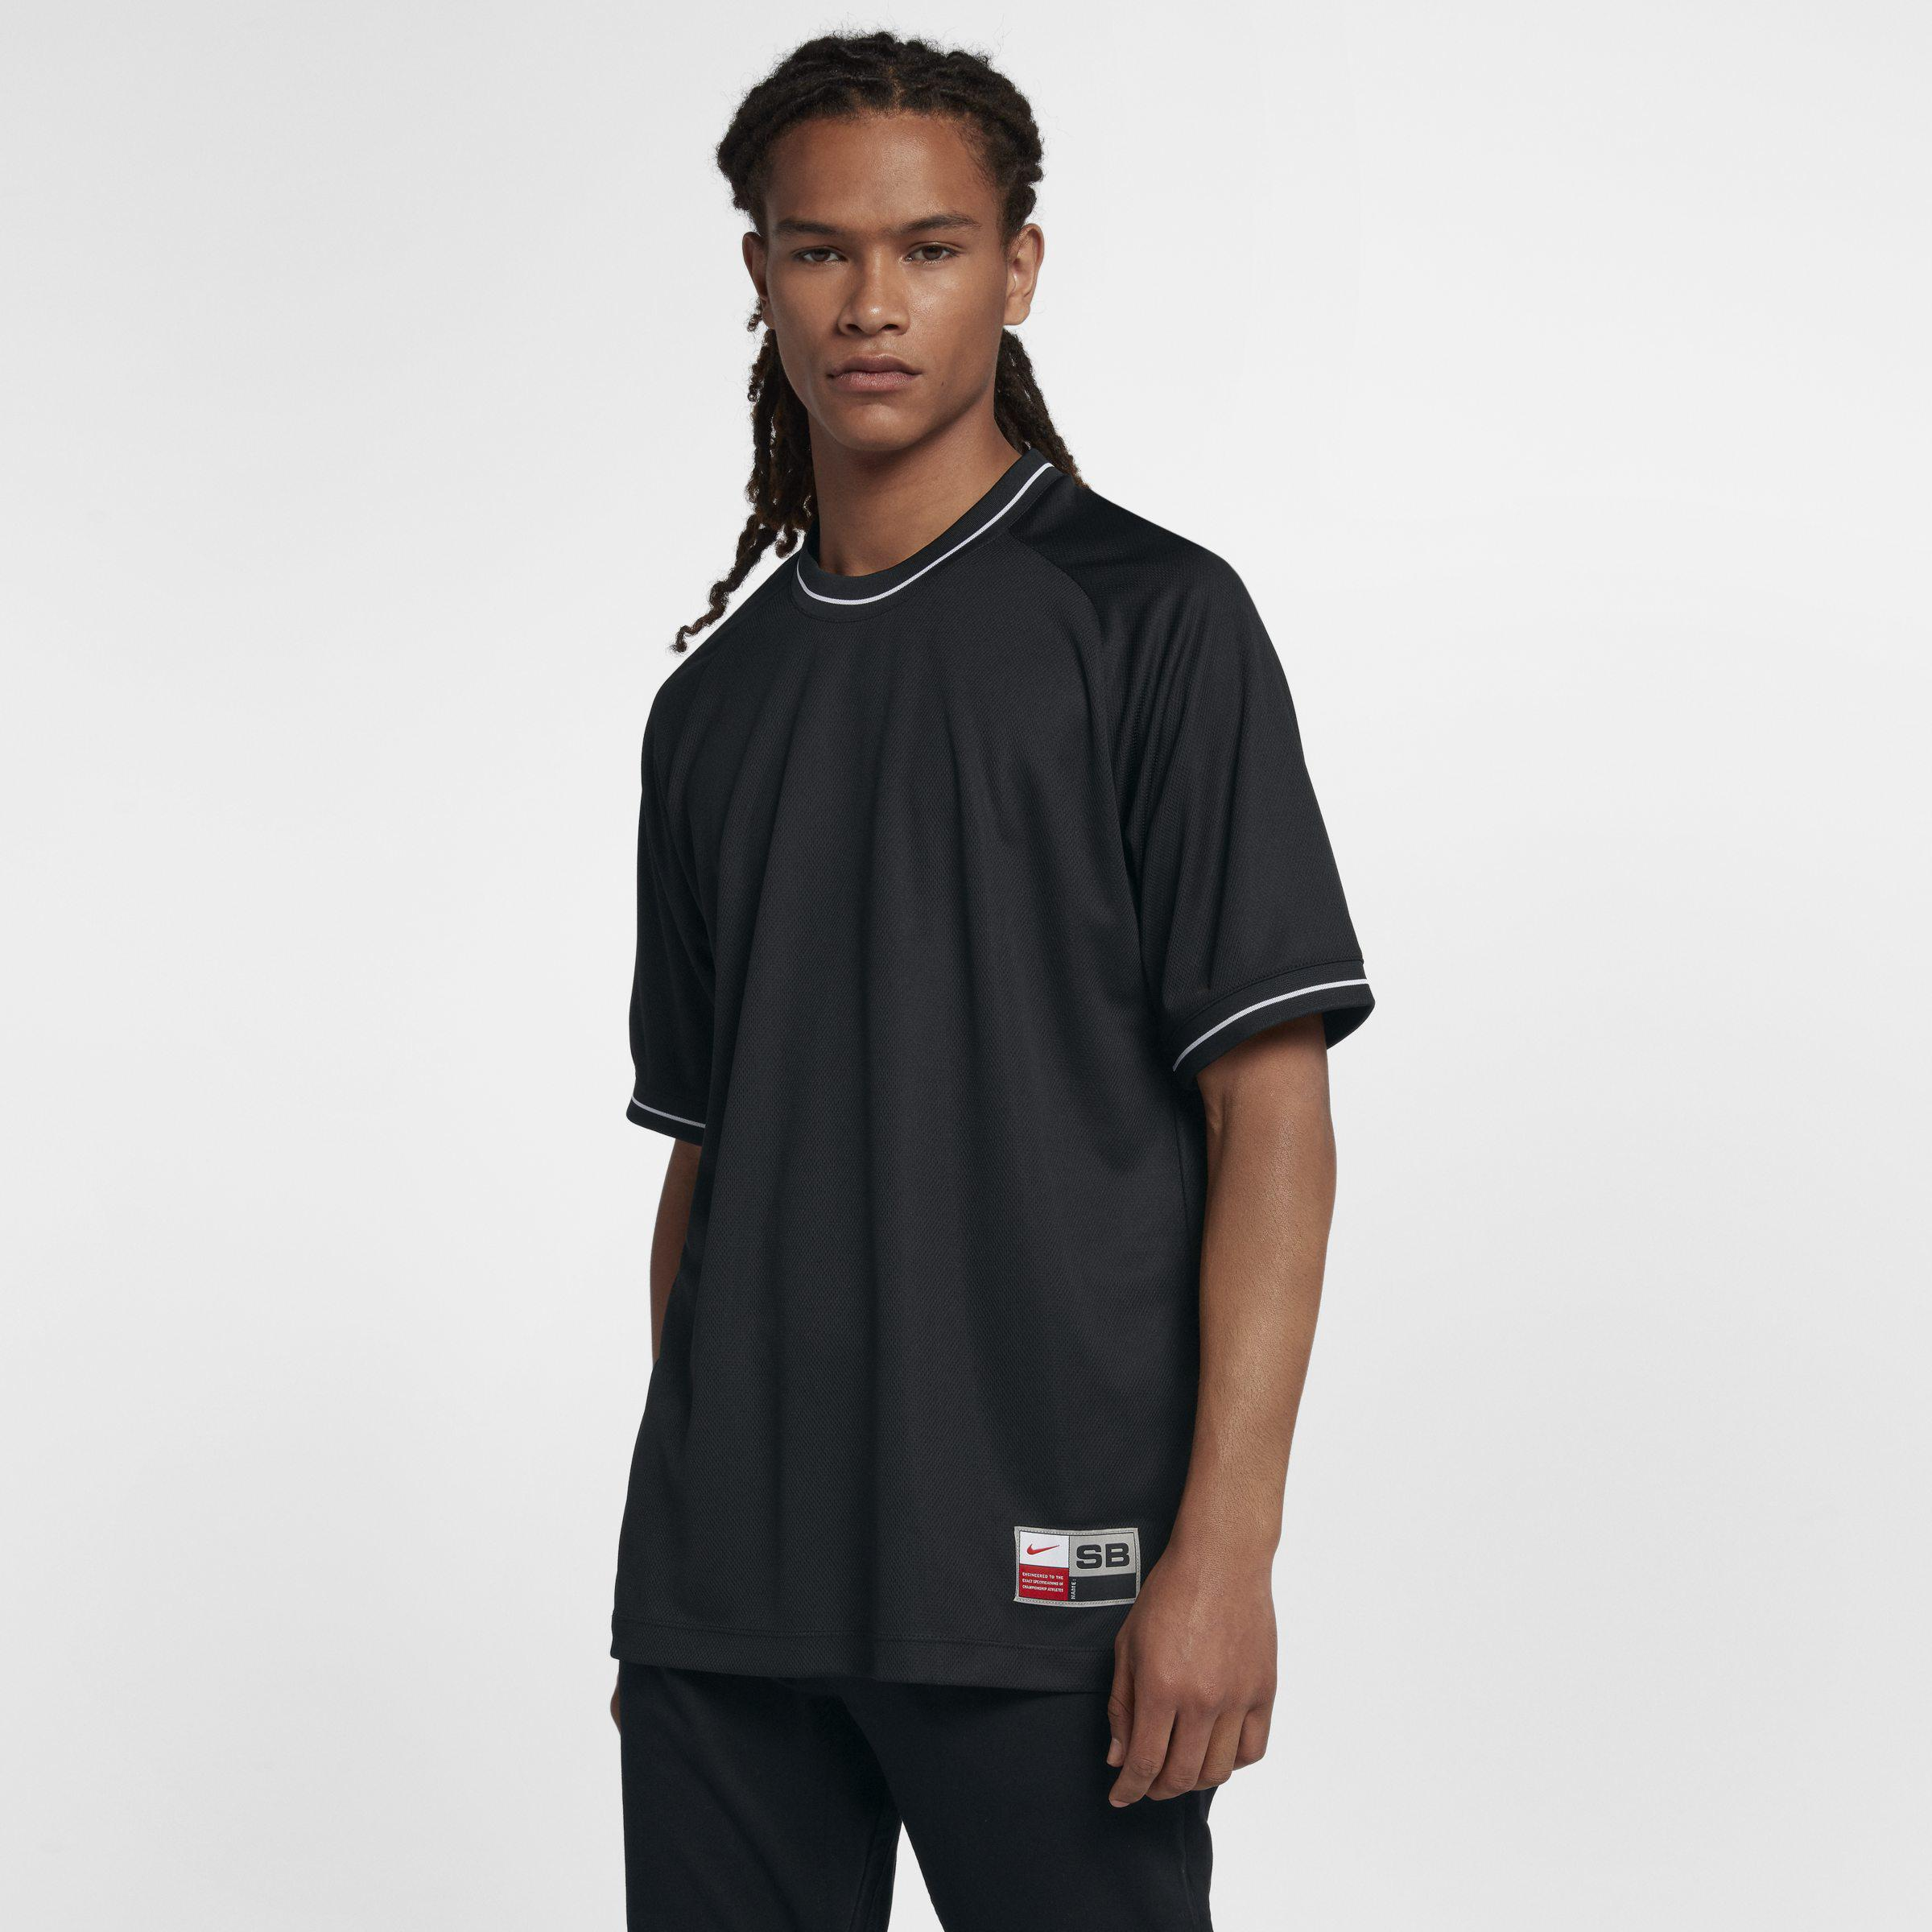 5e76c3c17681 Nike Sb Dri-fit Short-sleeve Top in Black for Men - Lyst